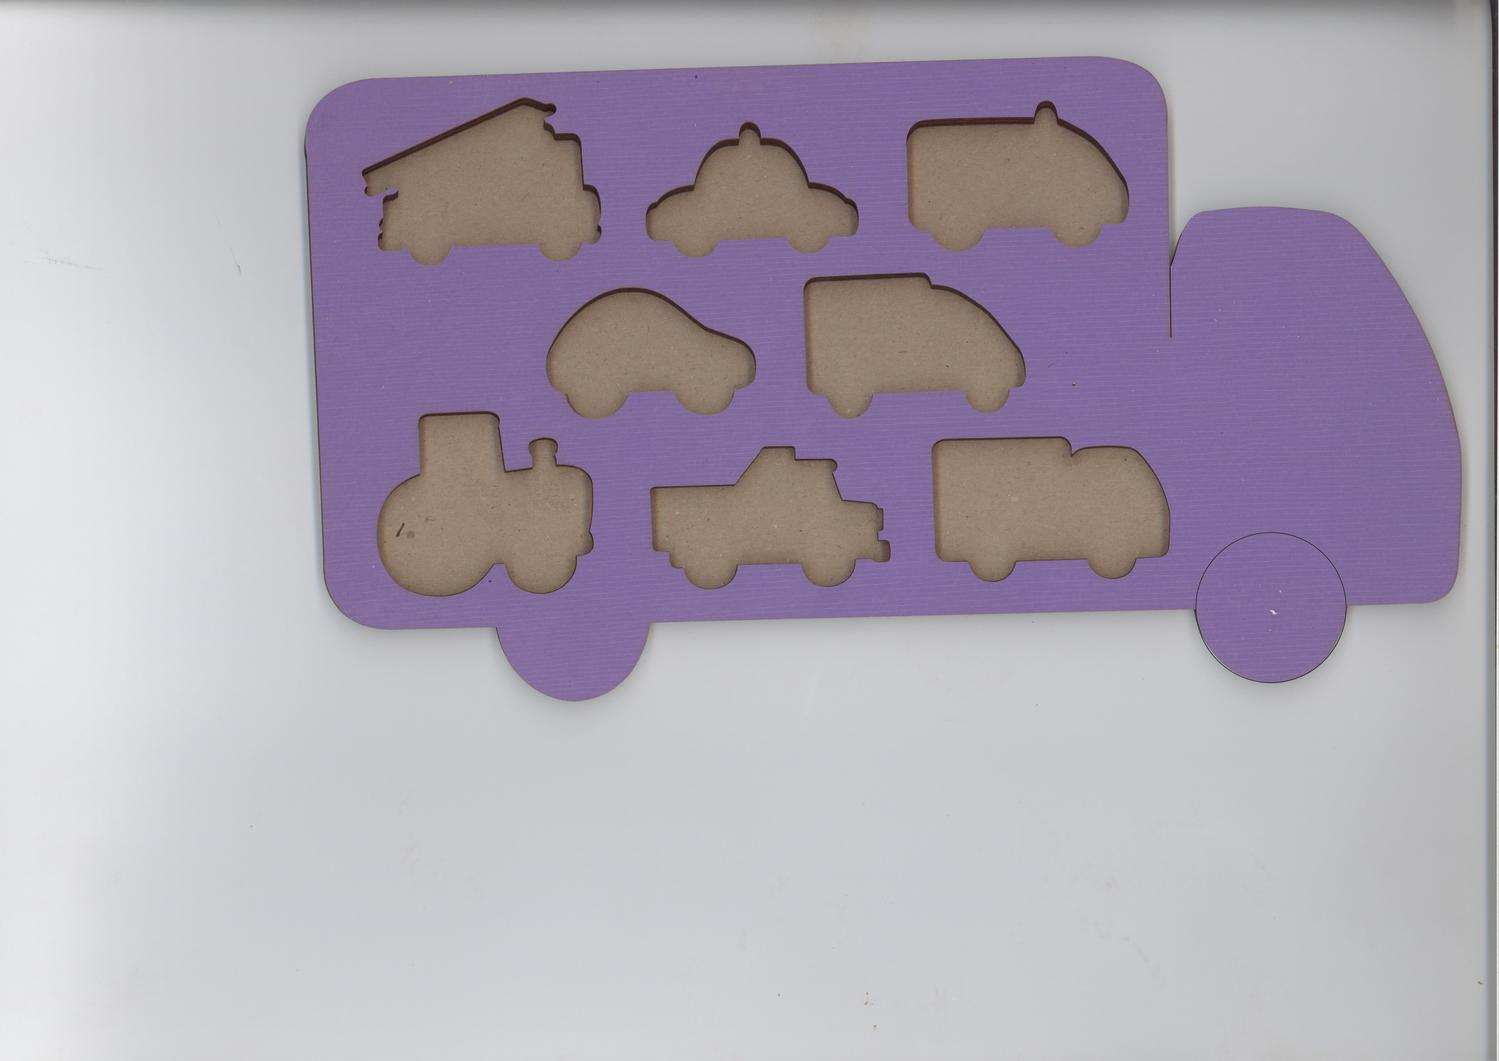 Laser Cut Vehicles Shapes Puzzle Wooden Peg Puzzles For Toddlers Free Vector